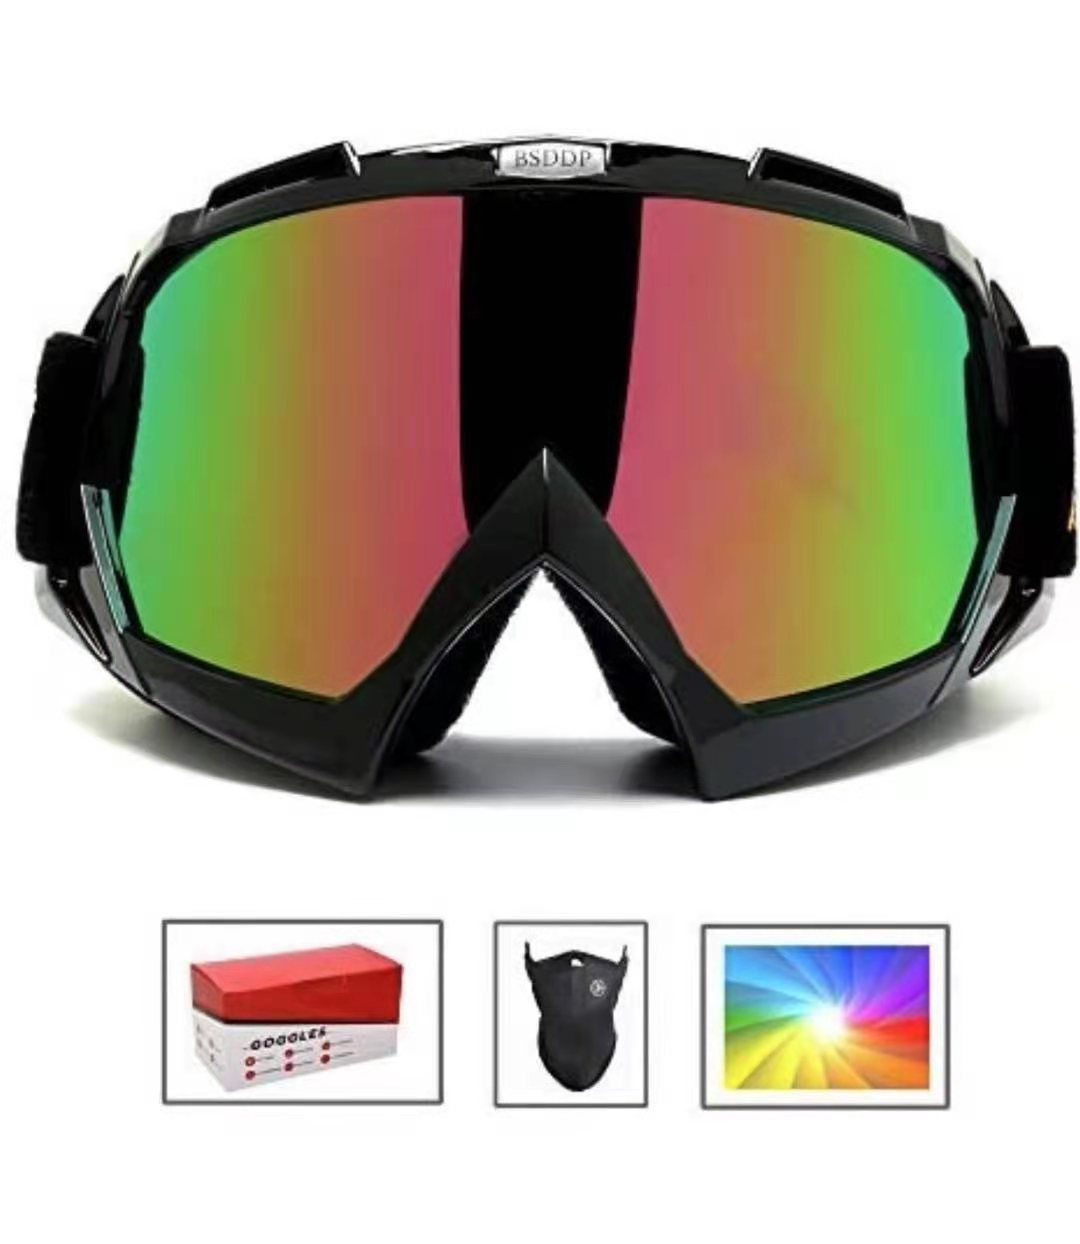 Adult Professional Ski Goggles Snowmobile Snowboard Skate Snow Skiing Goggles with 100% UV400 Protection Bright Lens TPC Frame Material Anti Sand Wind